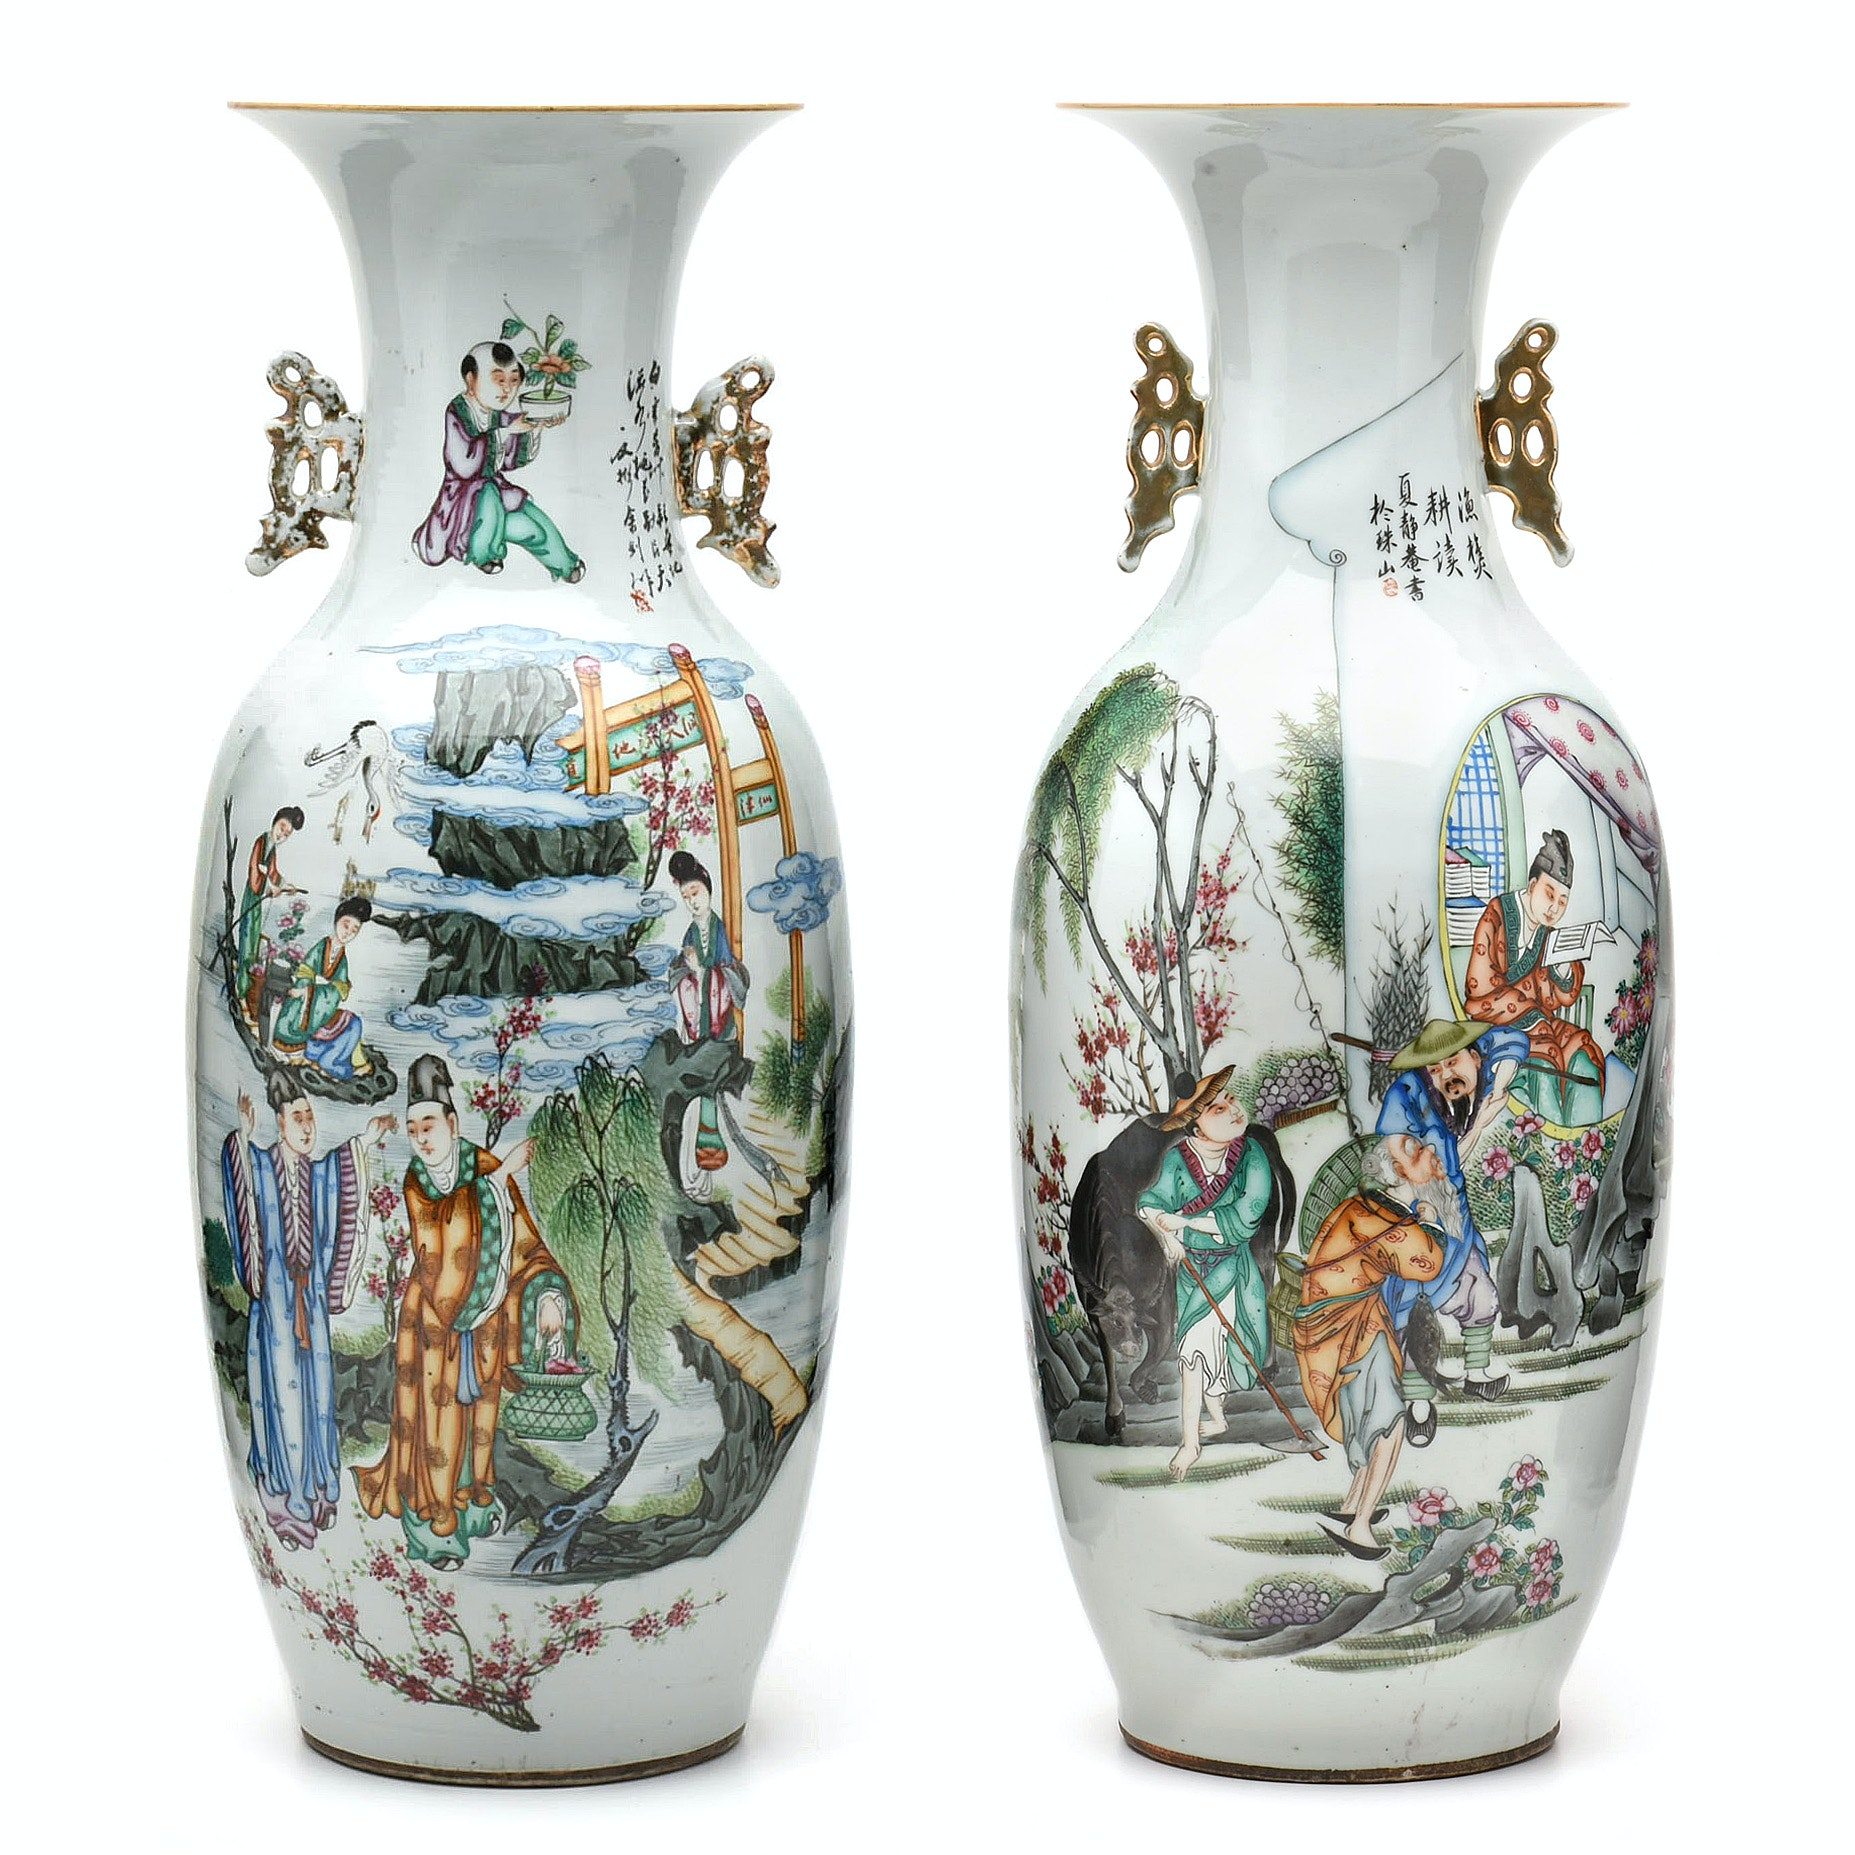 Bin Yu Zhao Chinese Famille Verte Porcelain Temple Urns